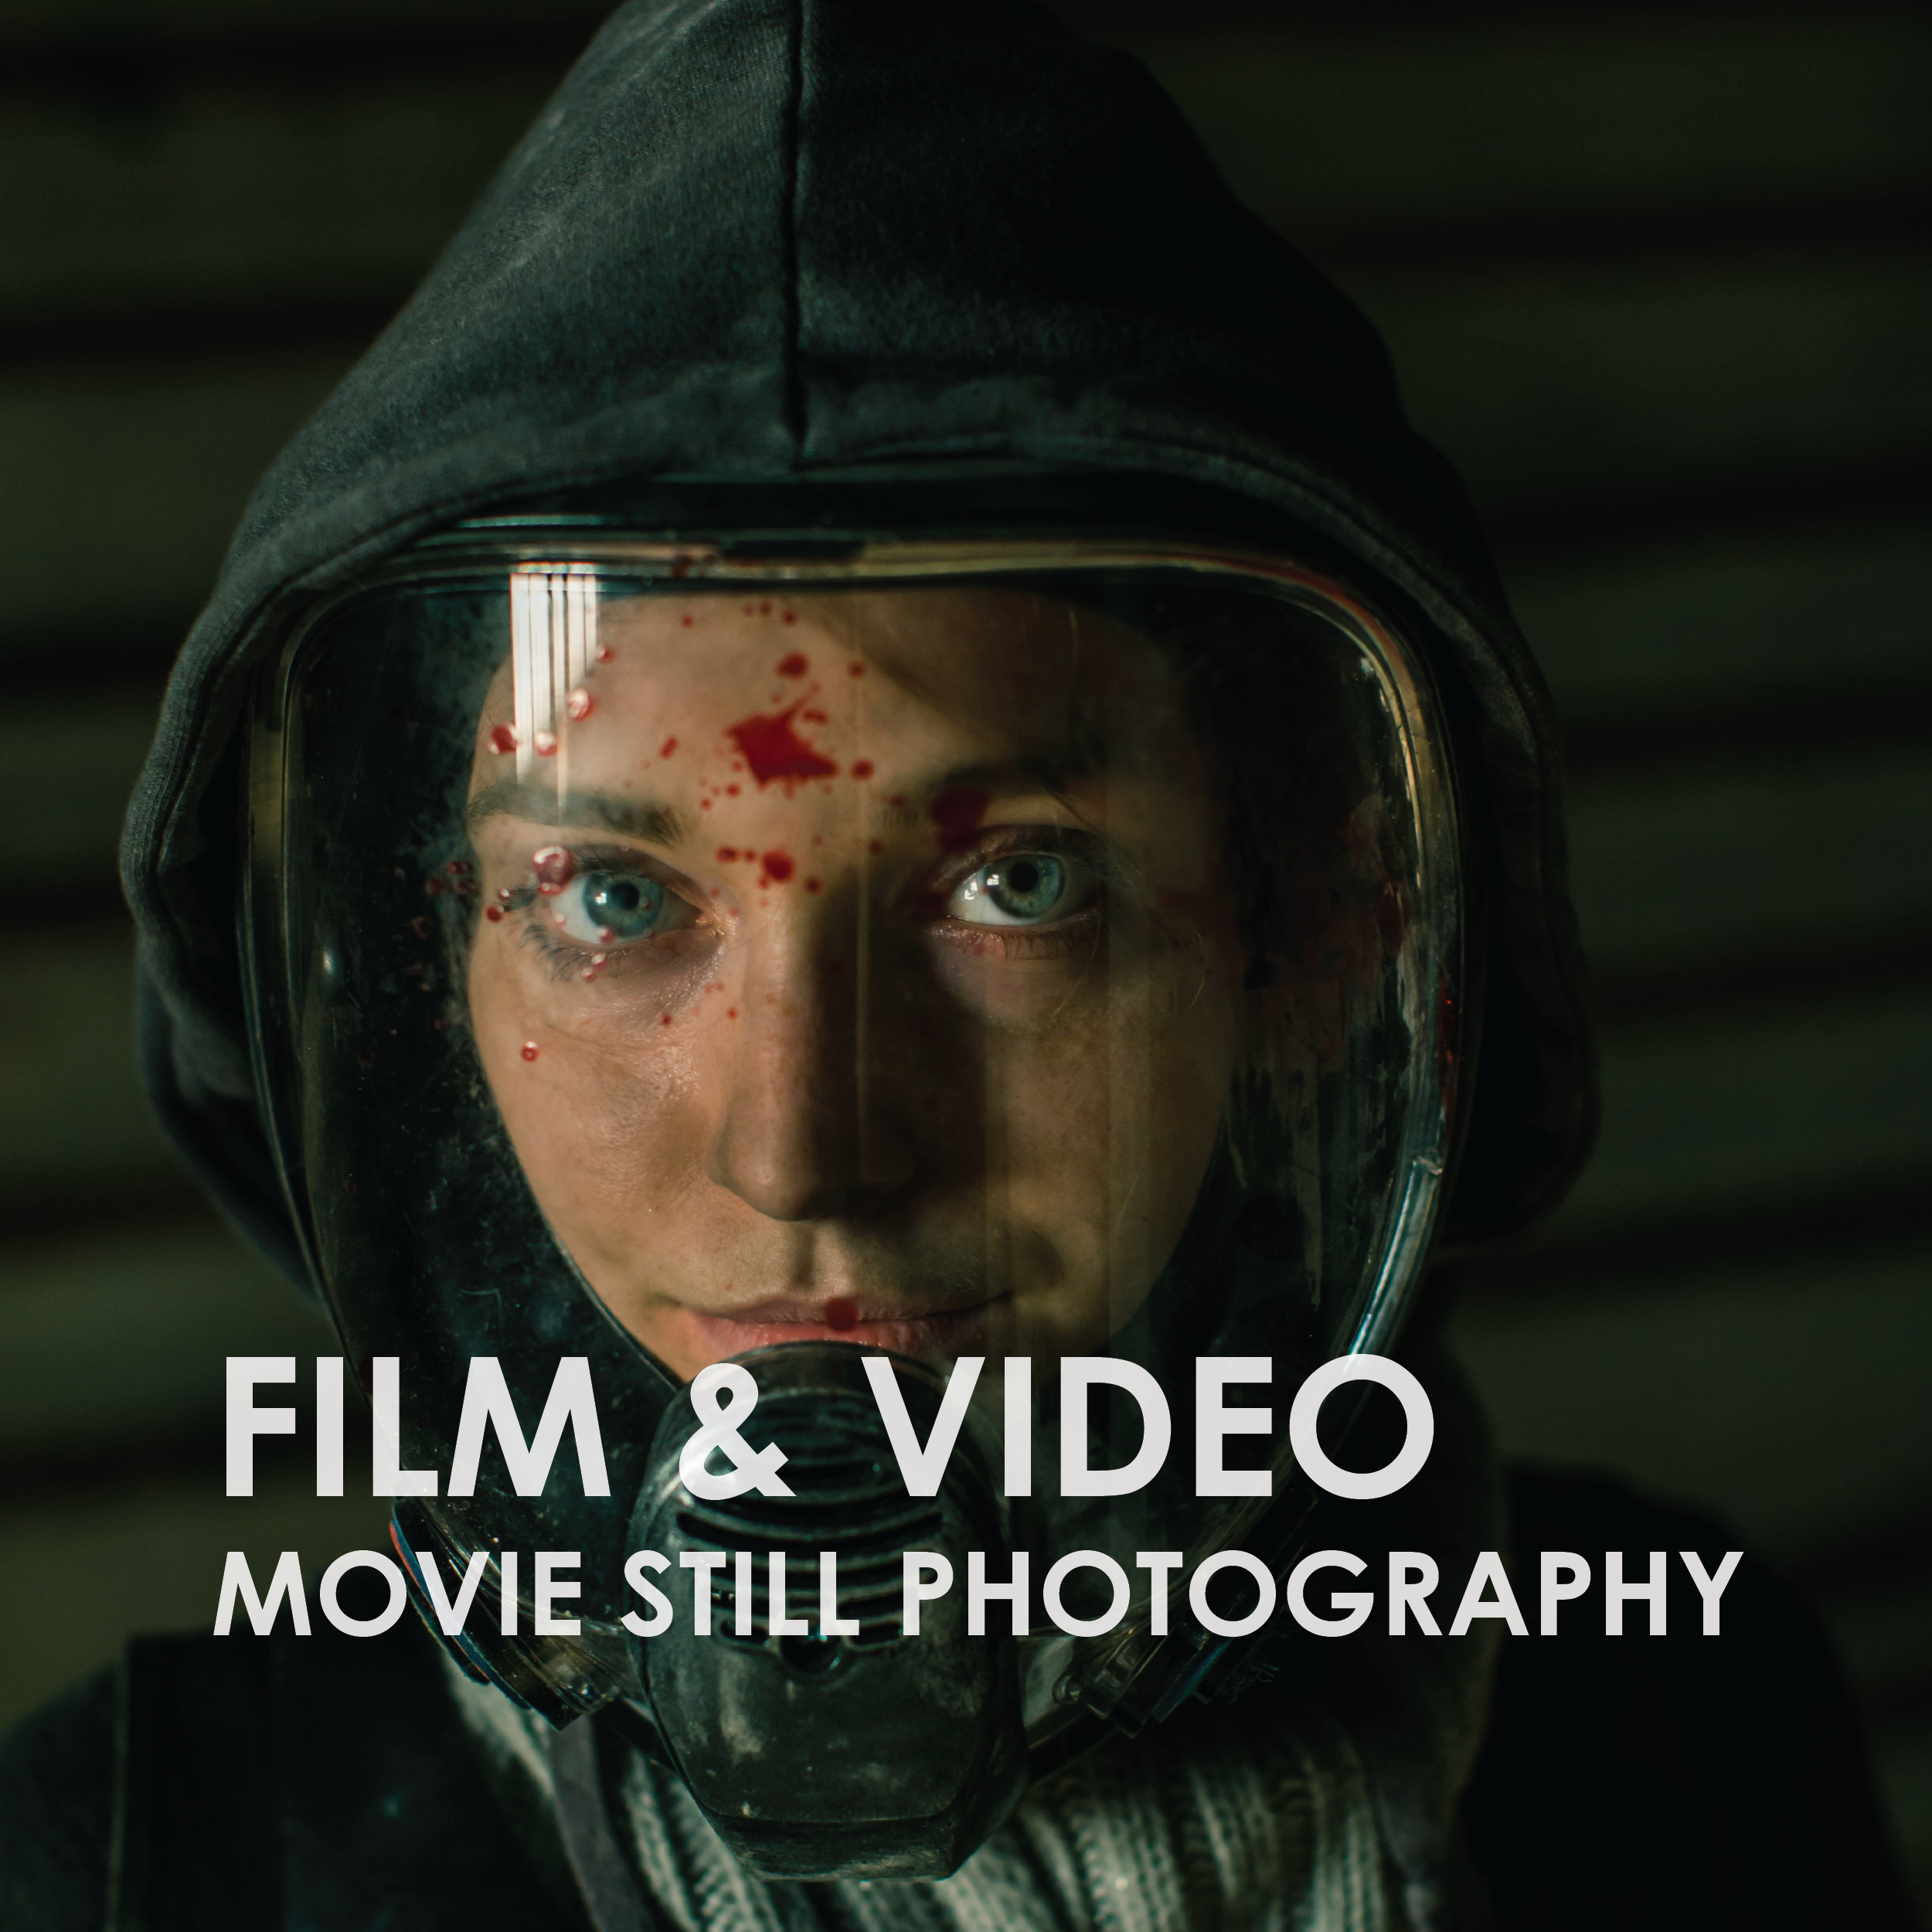 Movie Still photography Architectural Product Corporate Photography advertising website photos Annual Reports